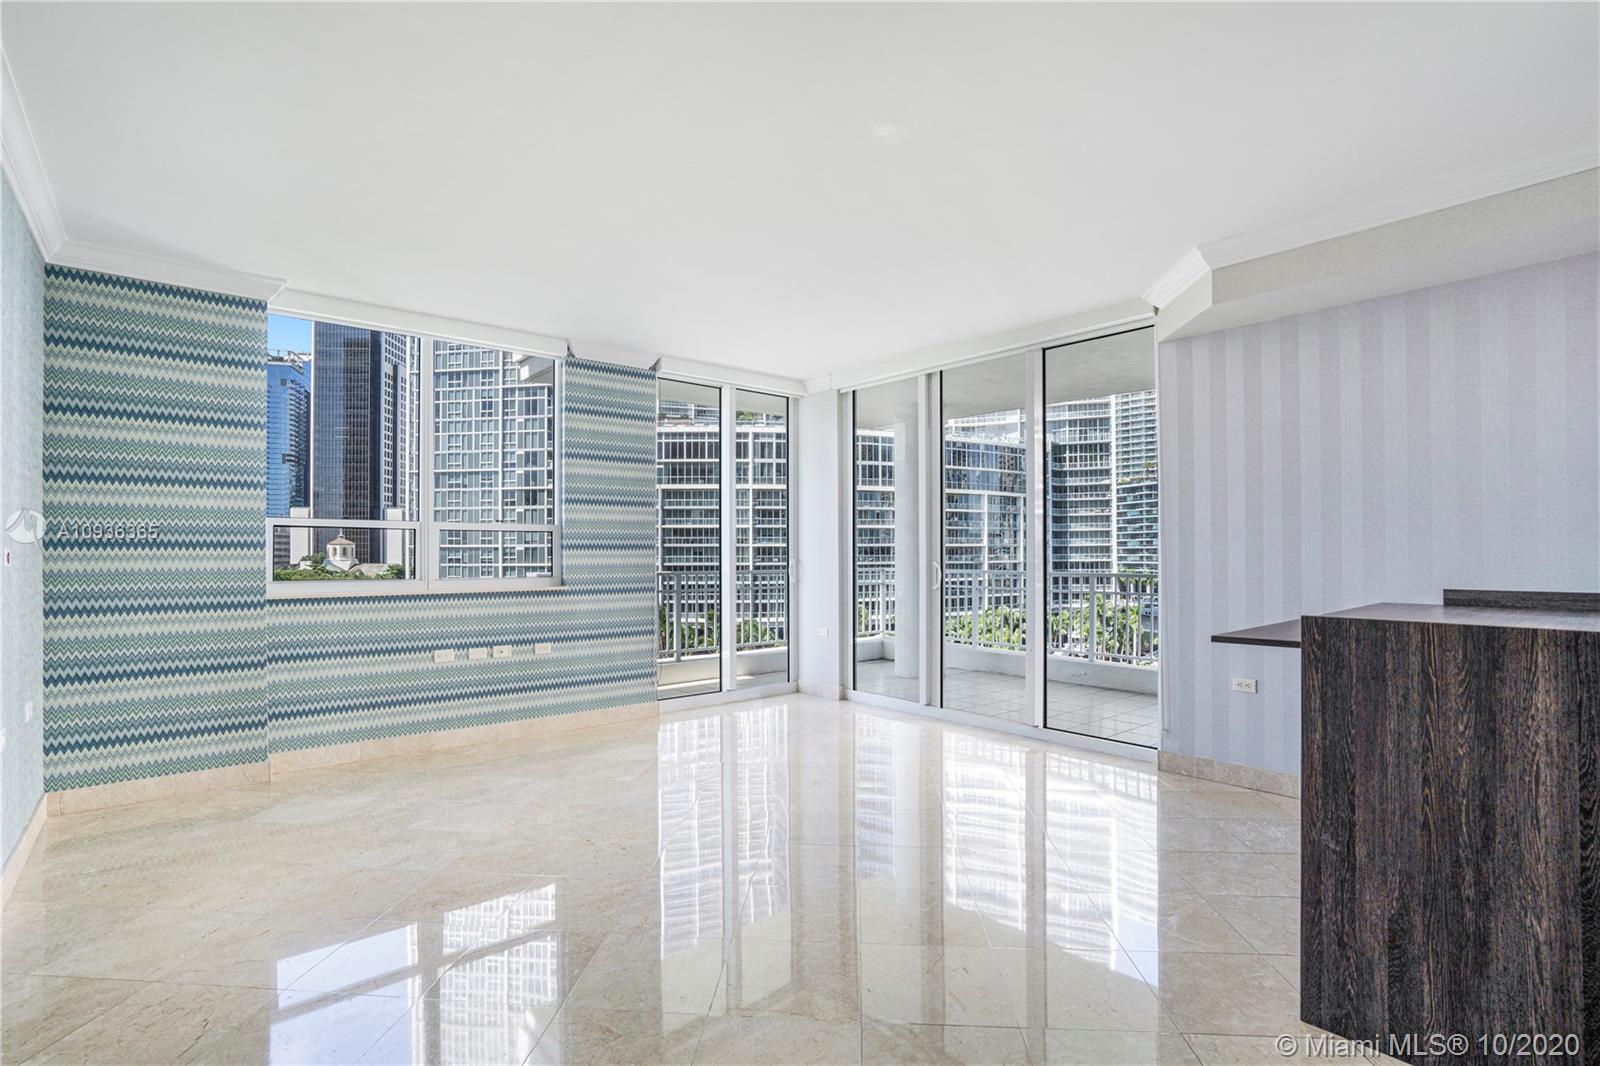 Courts Brickell Key #702 - 801 Brickell Key Blvd #702, Miami, FL 33131